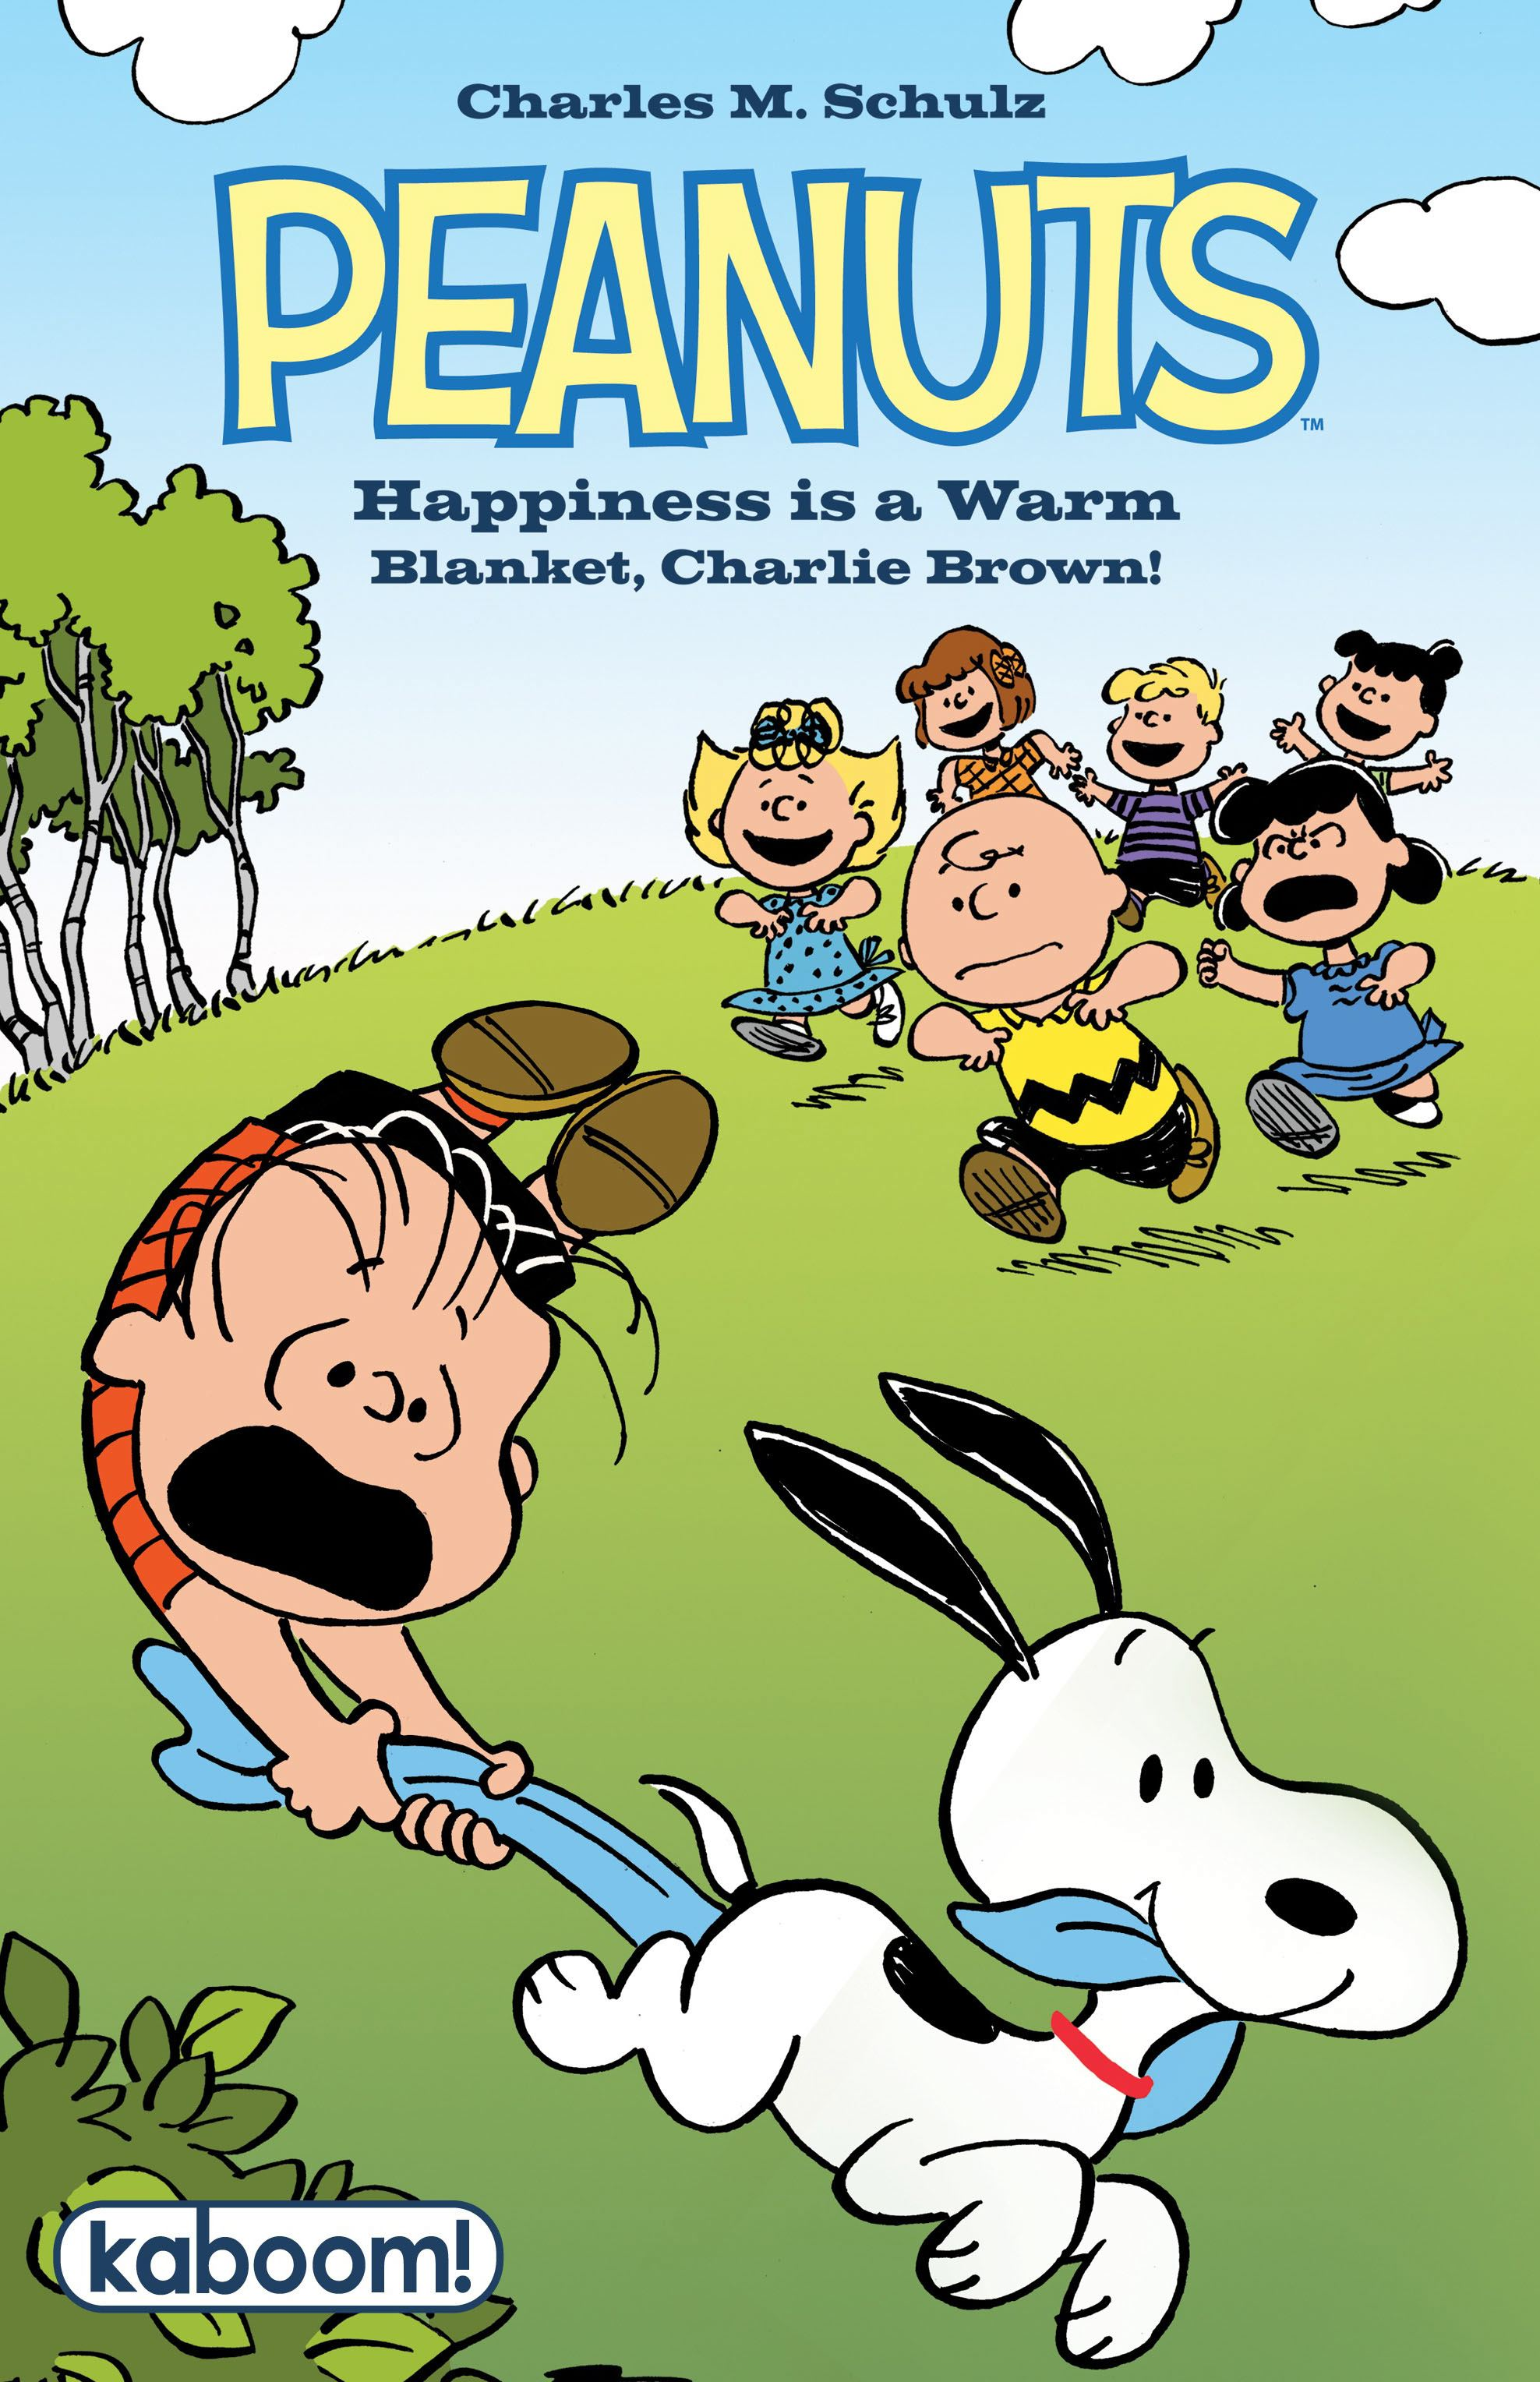 Peanuts-happiness-is-a-warm-blanket-charlie-9781608866816_hr